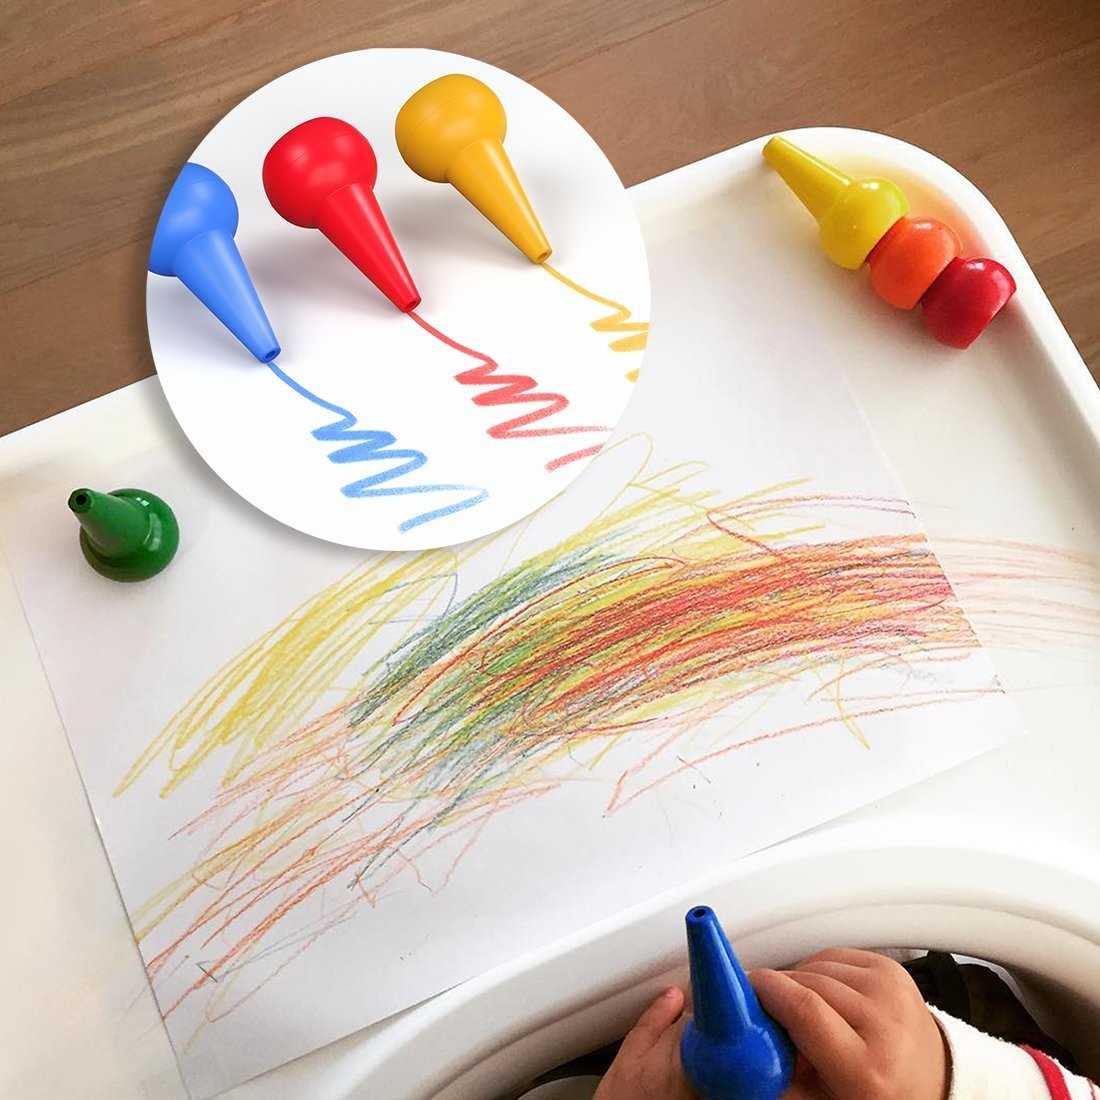 12 Colors Paint Crayons Sticks Stackable Toys for Kids Child Toddlers GiBot Toddlers Crayons Palm-Grip Crayons Safety and Non-Toxic Q-18